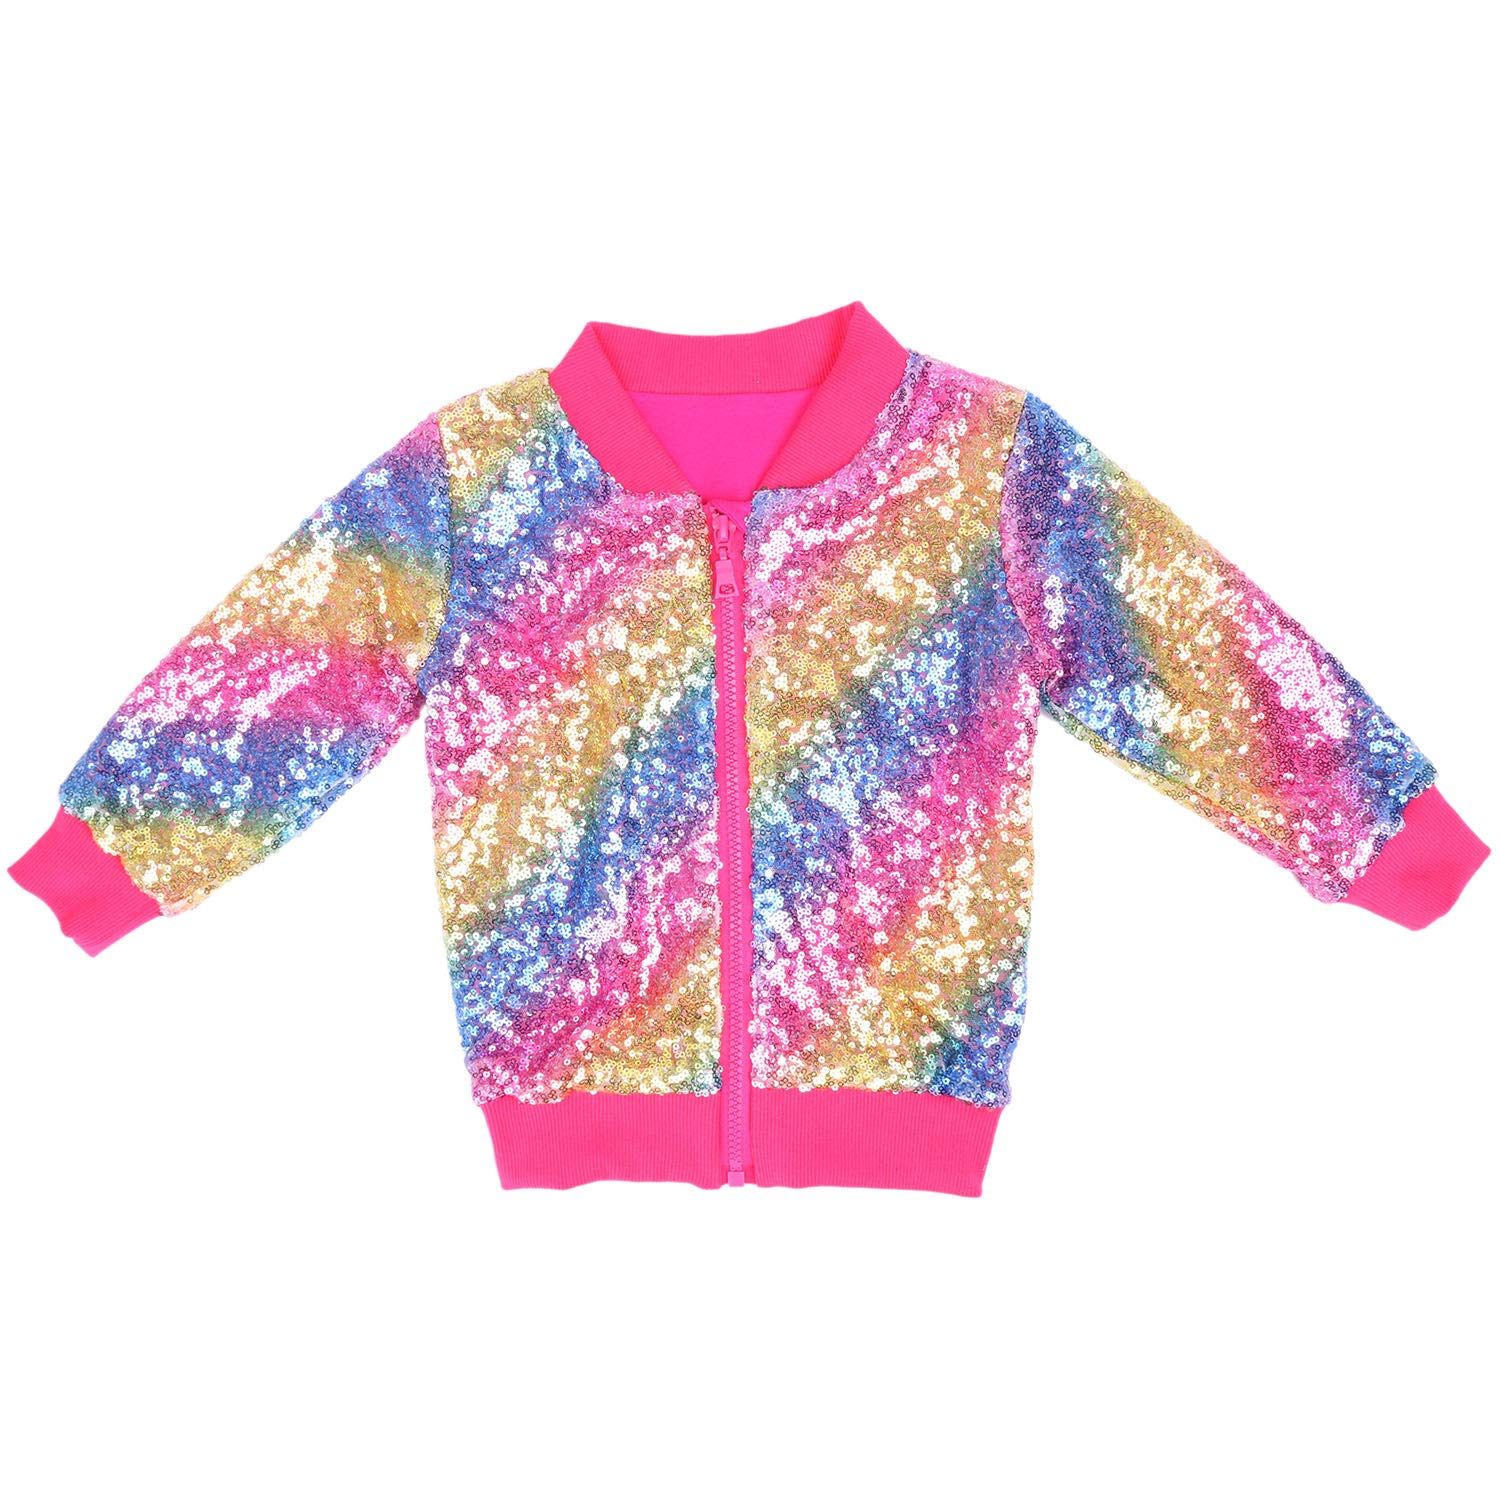 Cilucu Kids Jackets Girls Boys Sequin Zipper Coat Jacket for Toddler Birthday Christmas Clothes Bomber Hot Pink Rainbow 5-6years by Cilucu